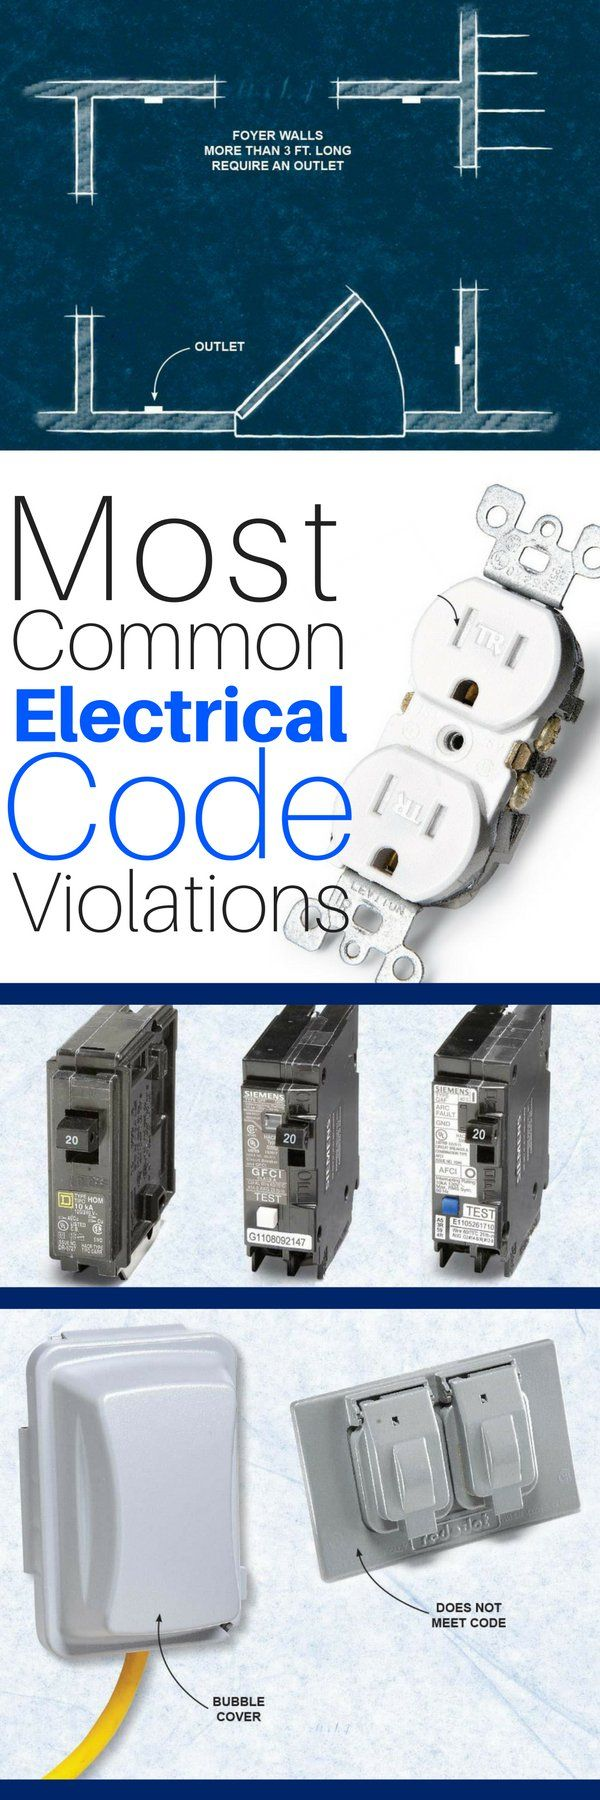 The 8 Most Common National Electric Code Violations Diyers Make